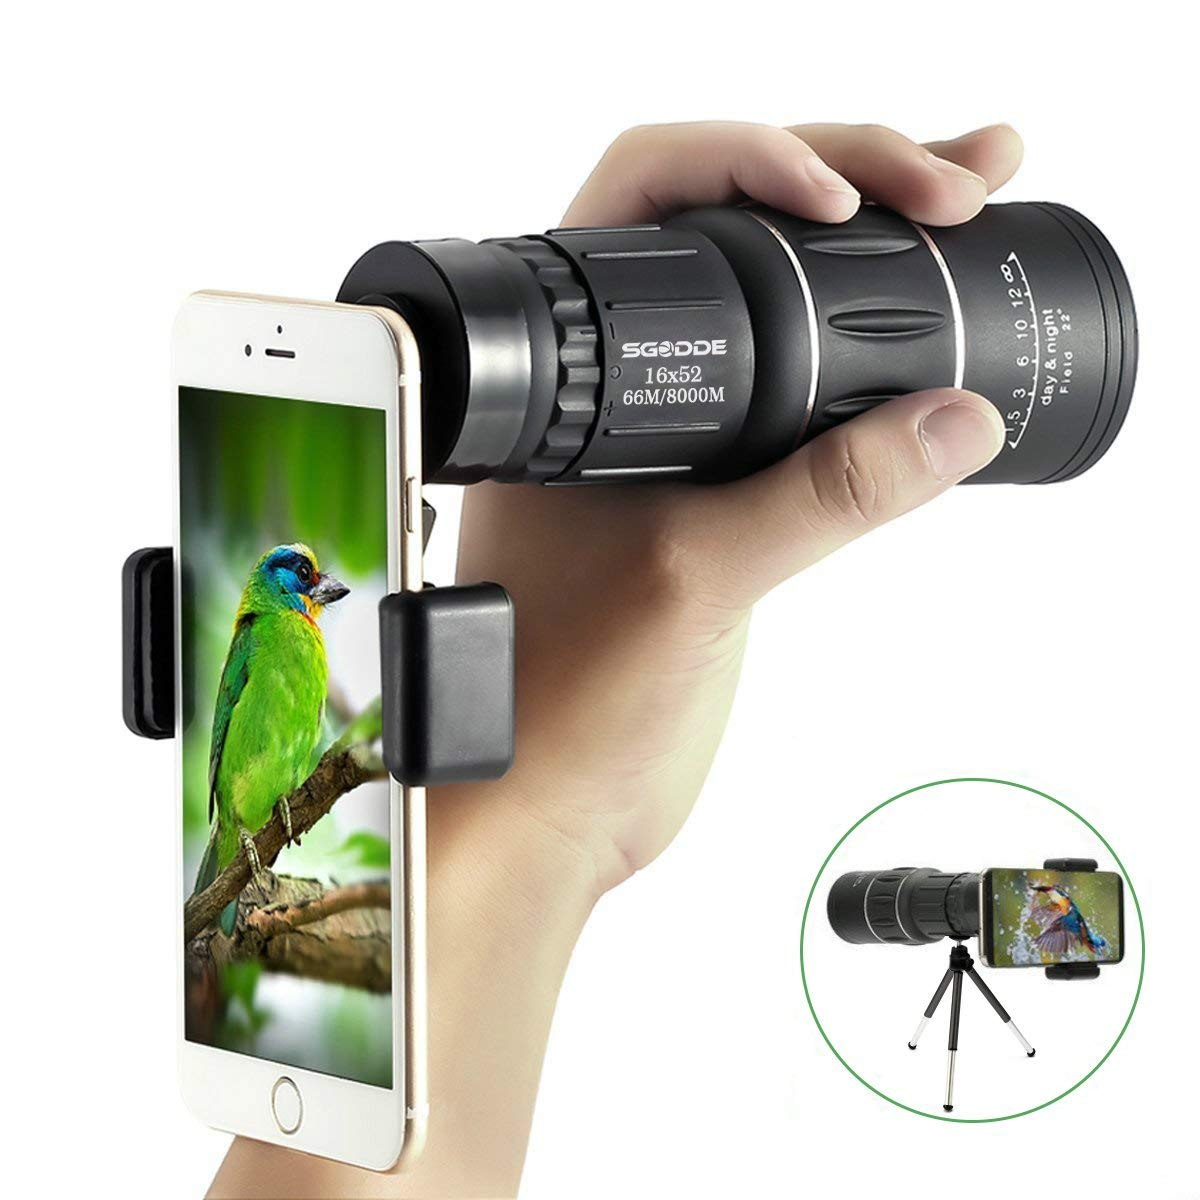 H.Yue 16X52 Monocular Telescopes,Optics High Powered Monocular Scope with Retractable Eyepiece and Multi Coated Optical Glass Lens,BAK4 Prism Lens Outdoors (excluding Tripod)